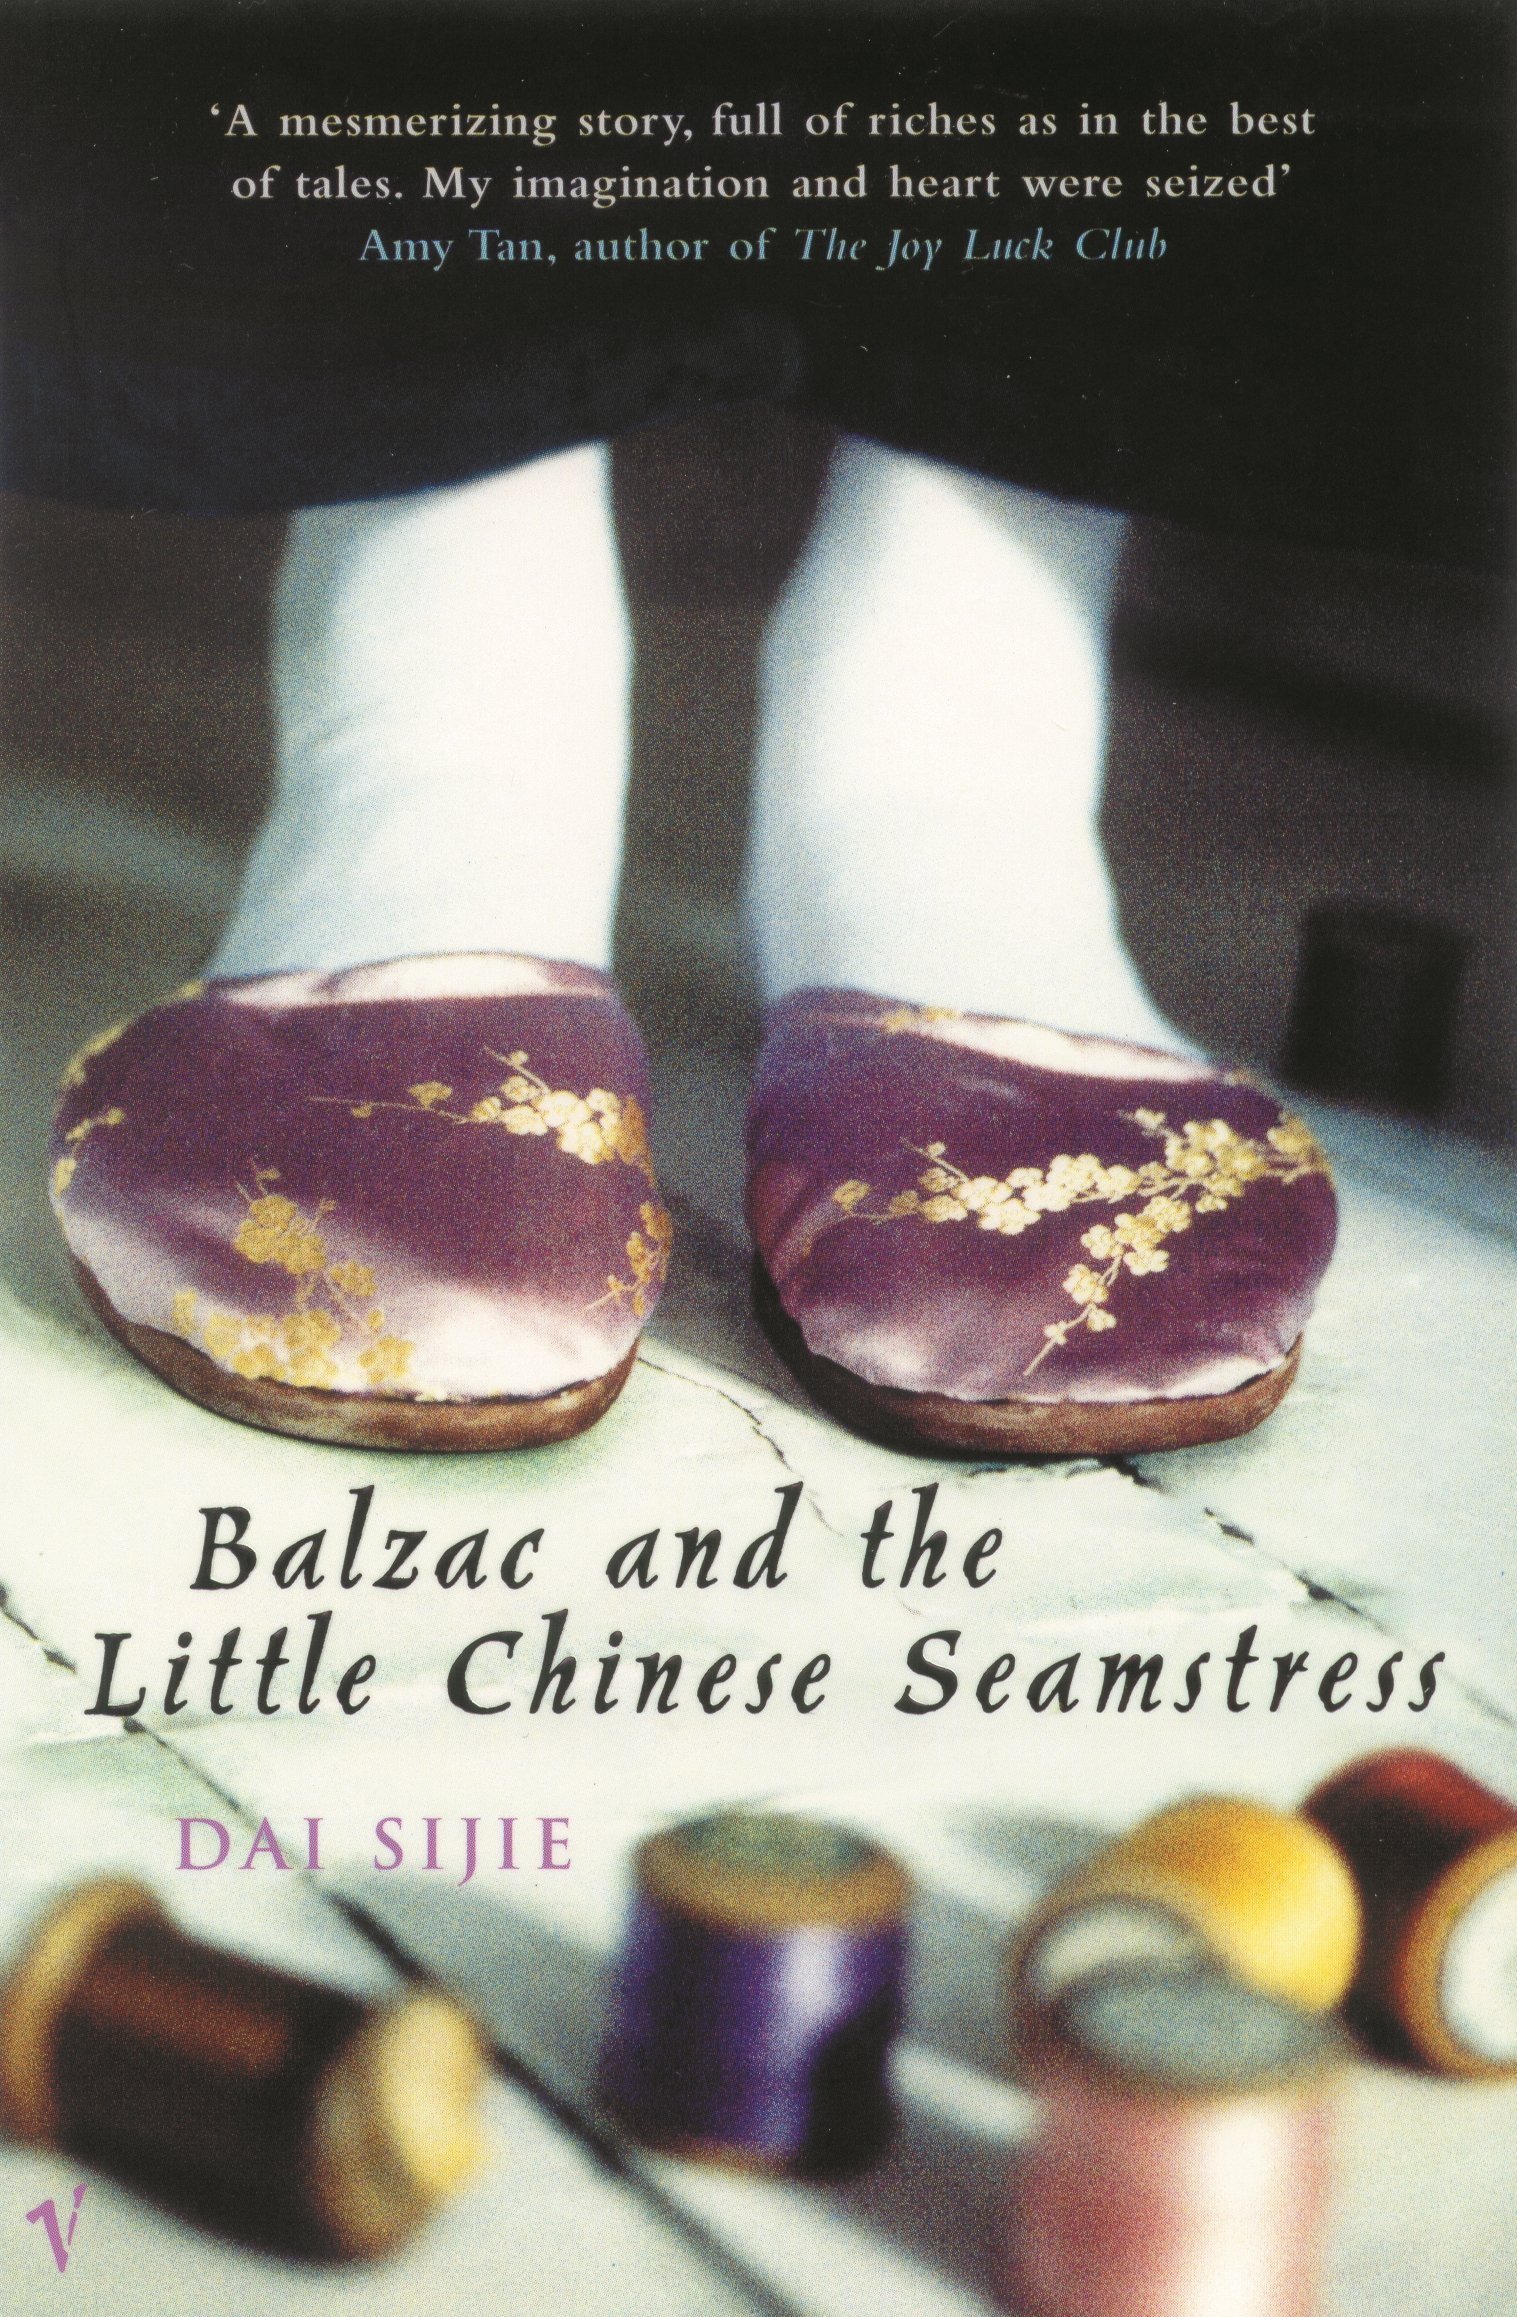 Balzac And The Little Chinese Seamstress: Amazon.es: Dai Sijie: Libros en idiomas extranjeros